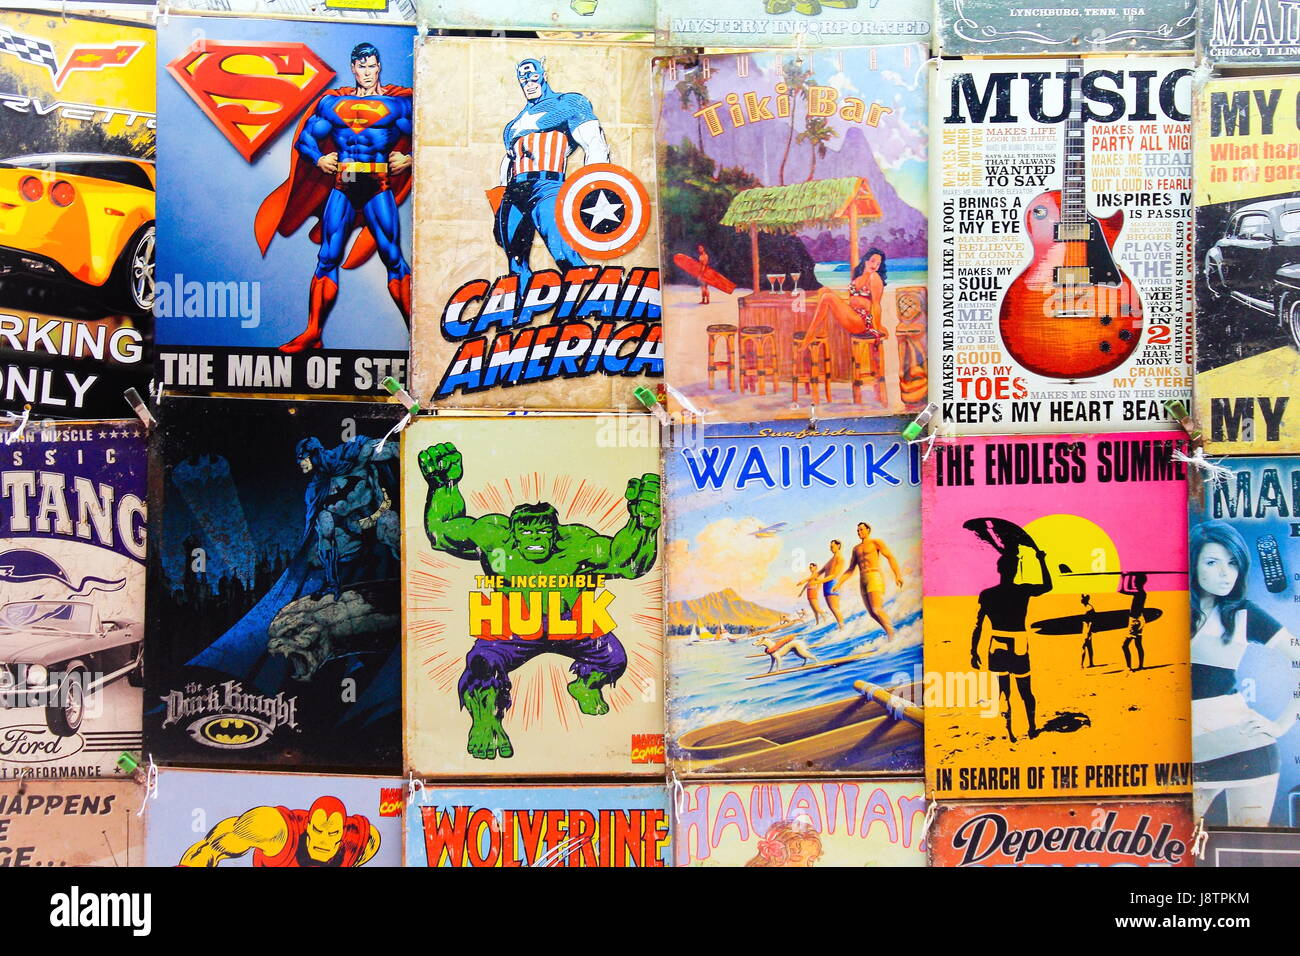 Old Comics and signs for sale at a Waikiki Market Stall - Stock Image